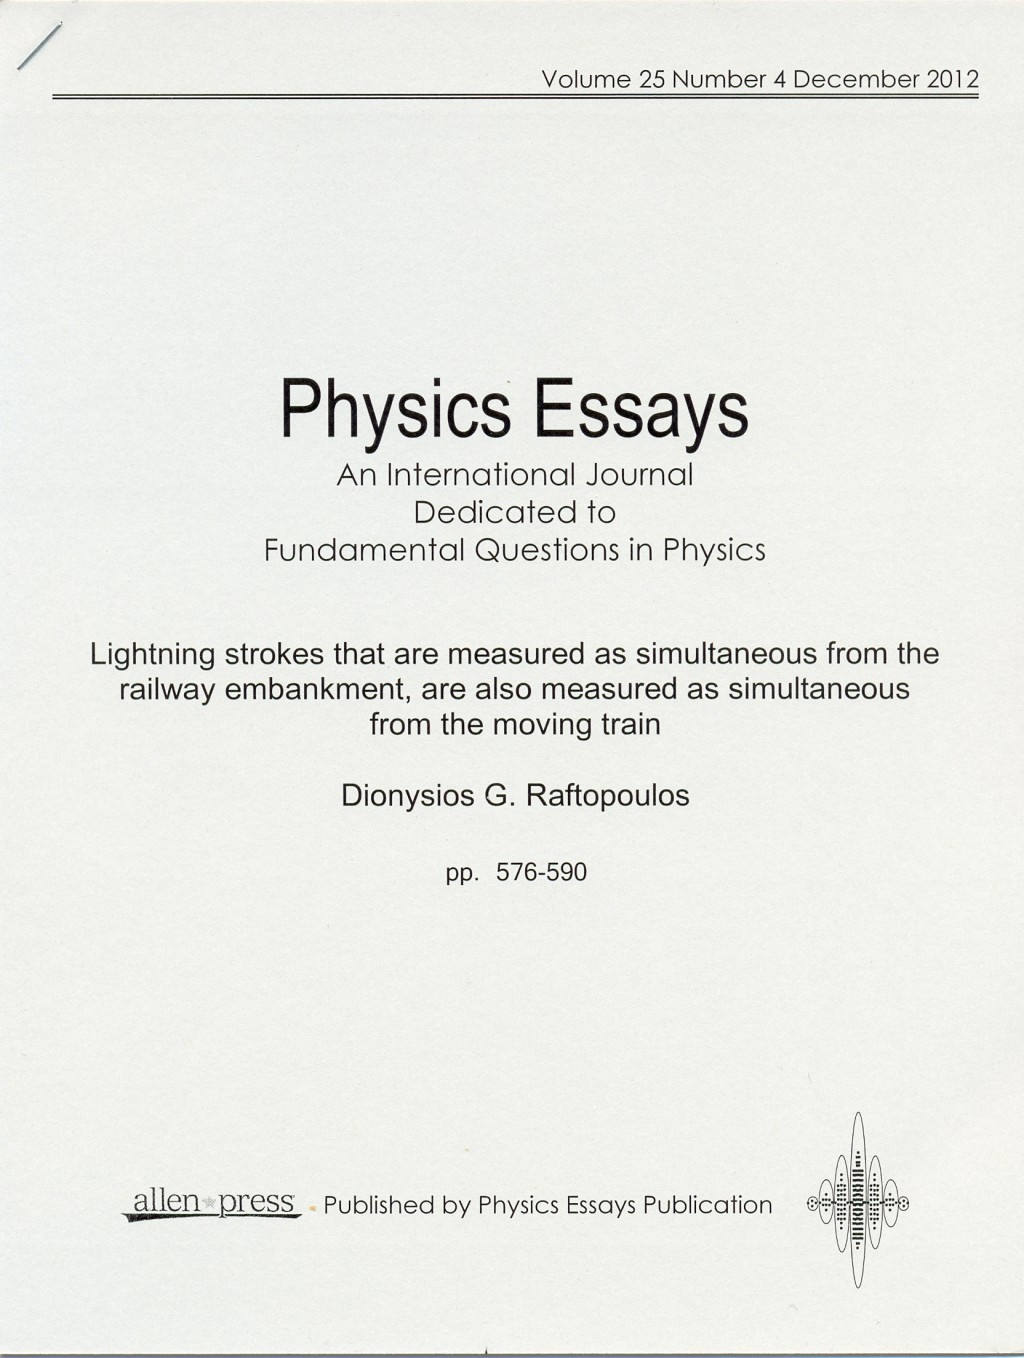 003 Physics Essays Cover202 Essay Rare Extended Topics Examples Wikipedia Crackpot Large